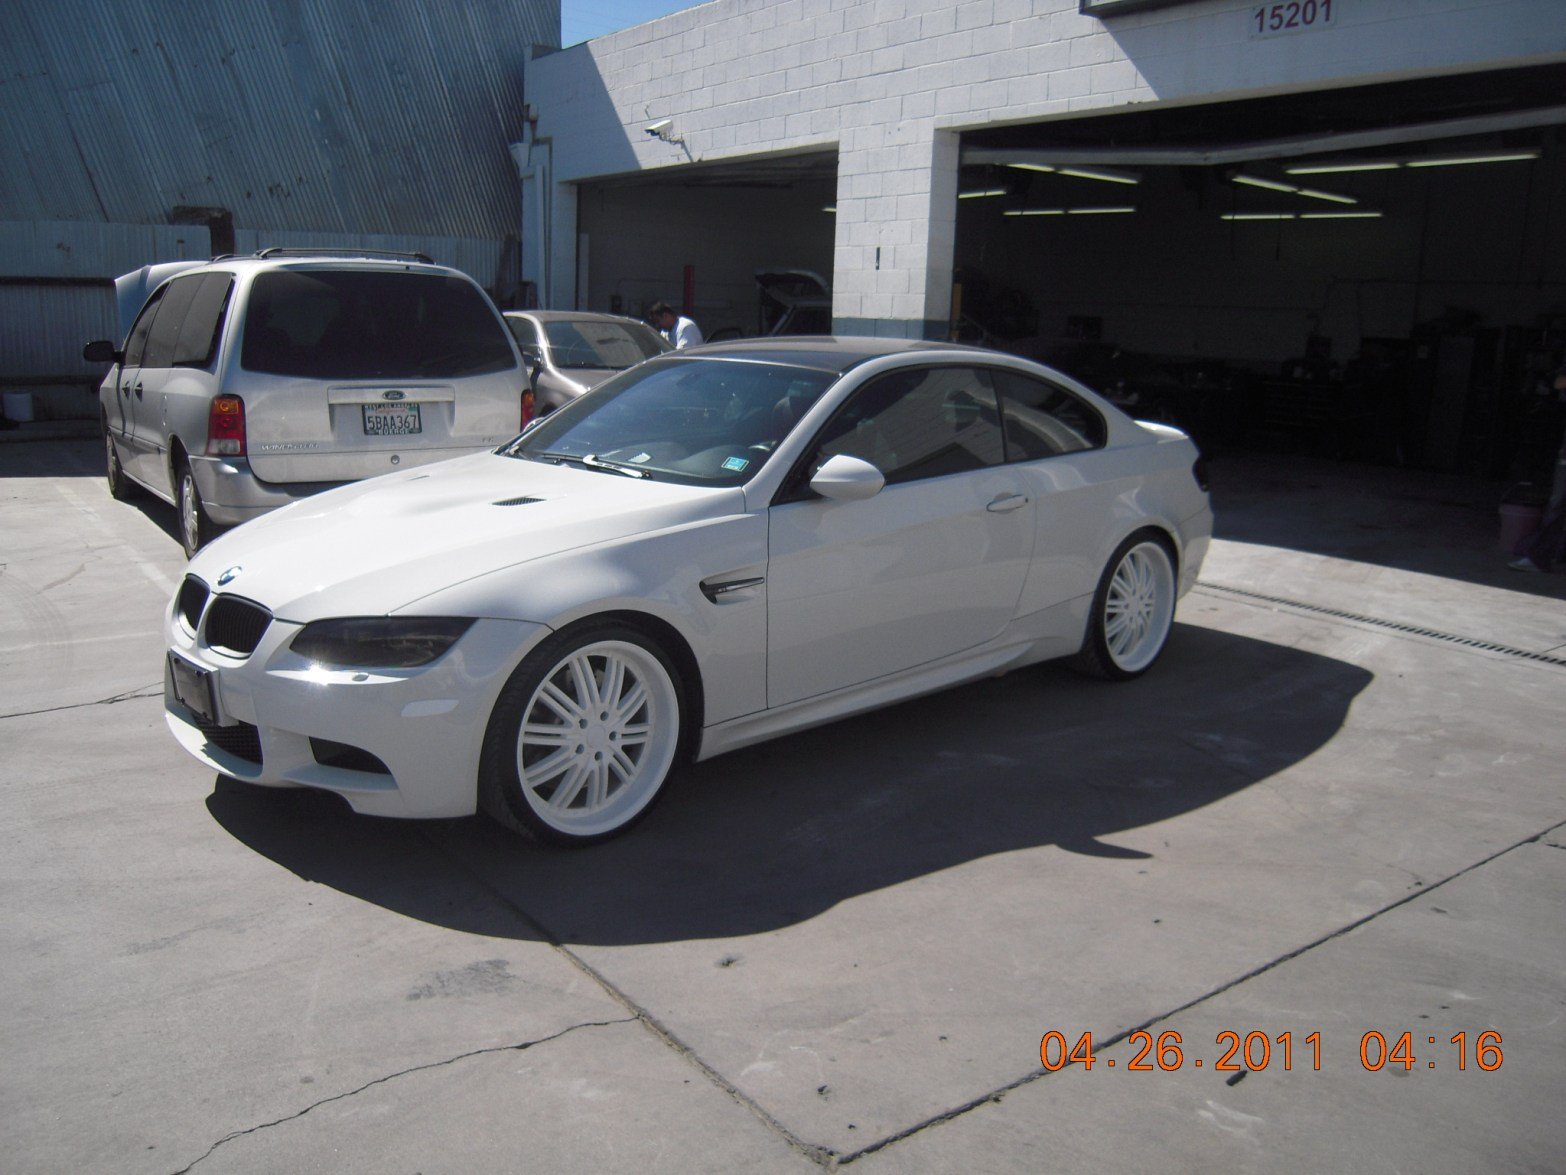 west-coast-body-and-paint-white-bmw-m3-5